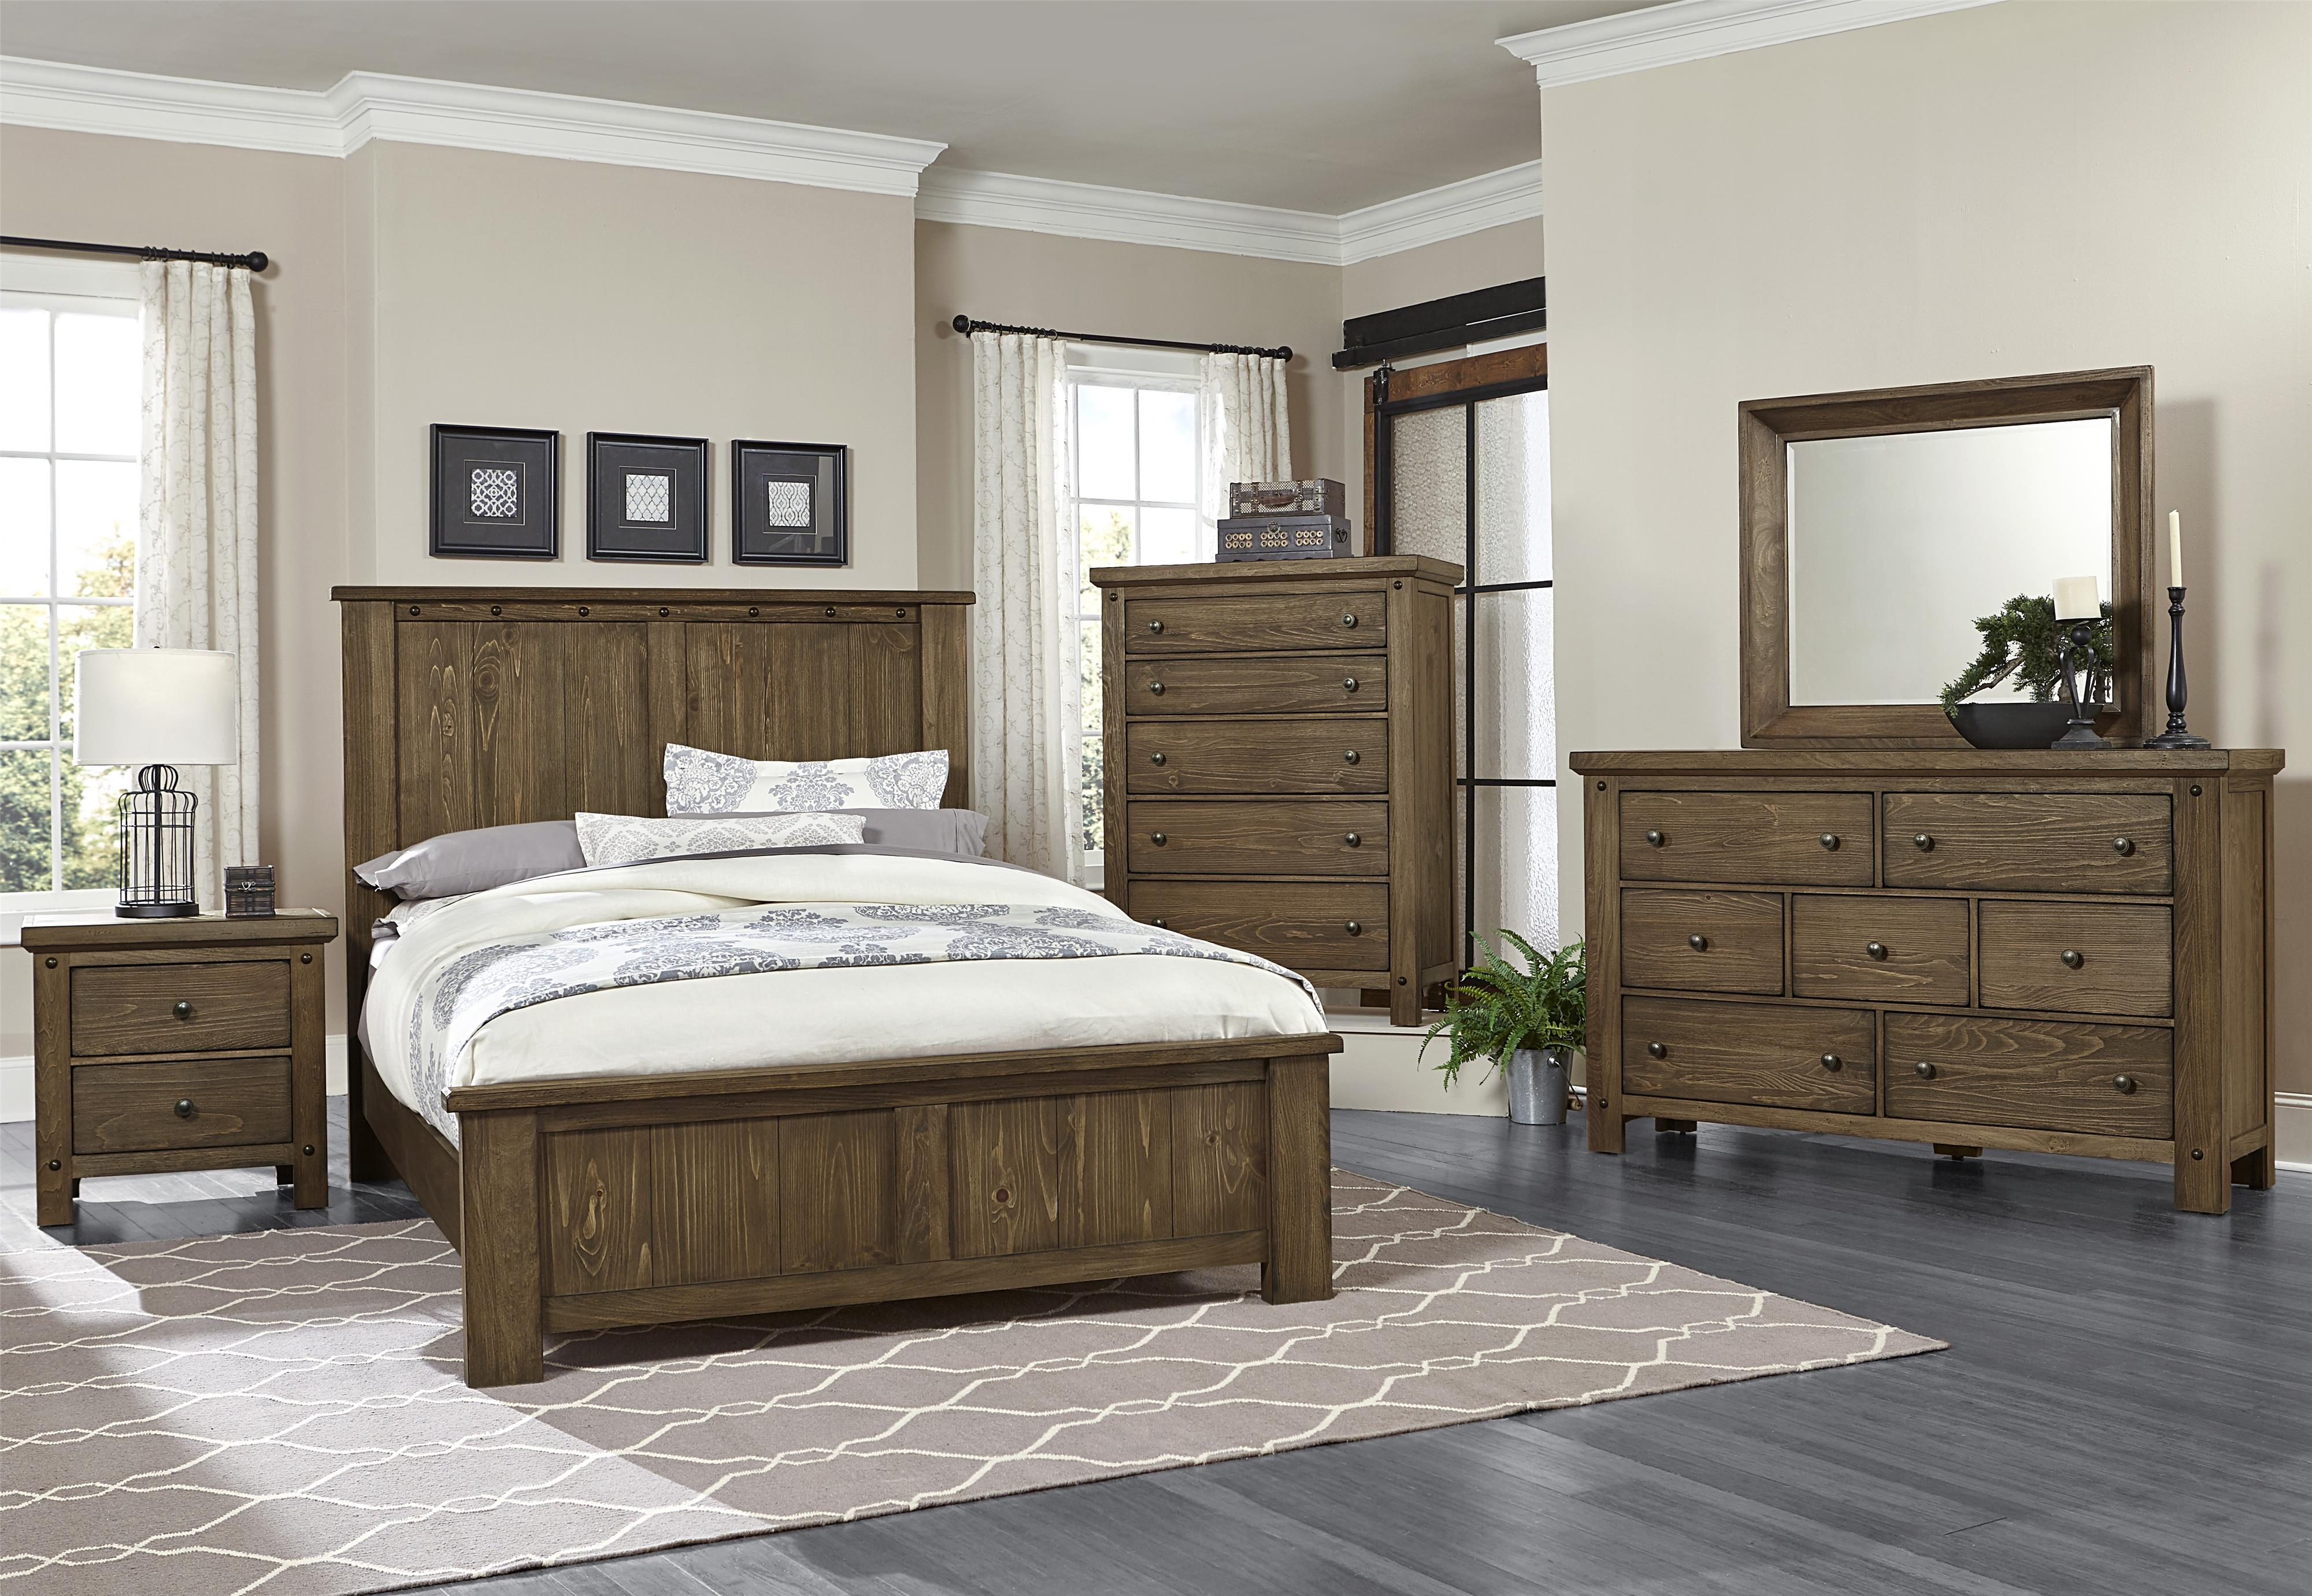 Vaughan Bassett Collaboration Queen Bedroom Group - Item Number: 610 Q Bedroom Group 1